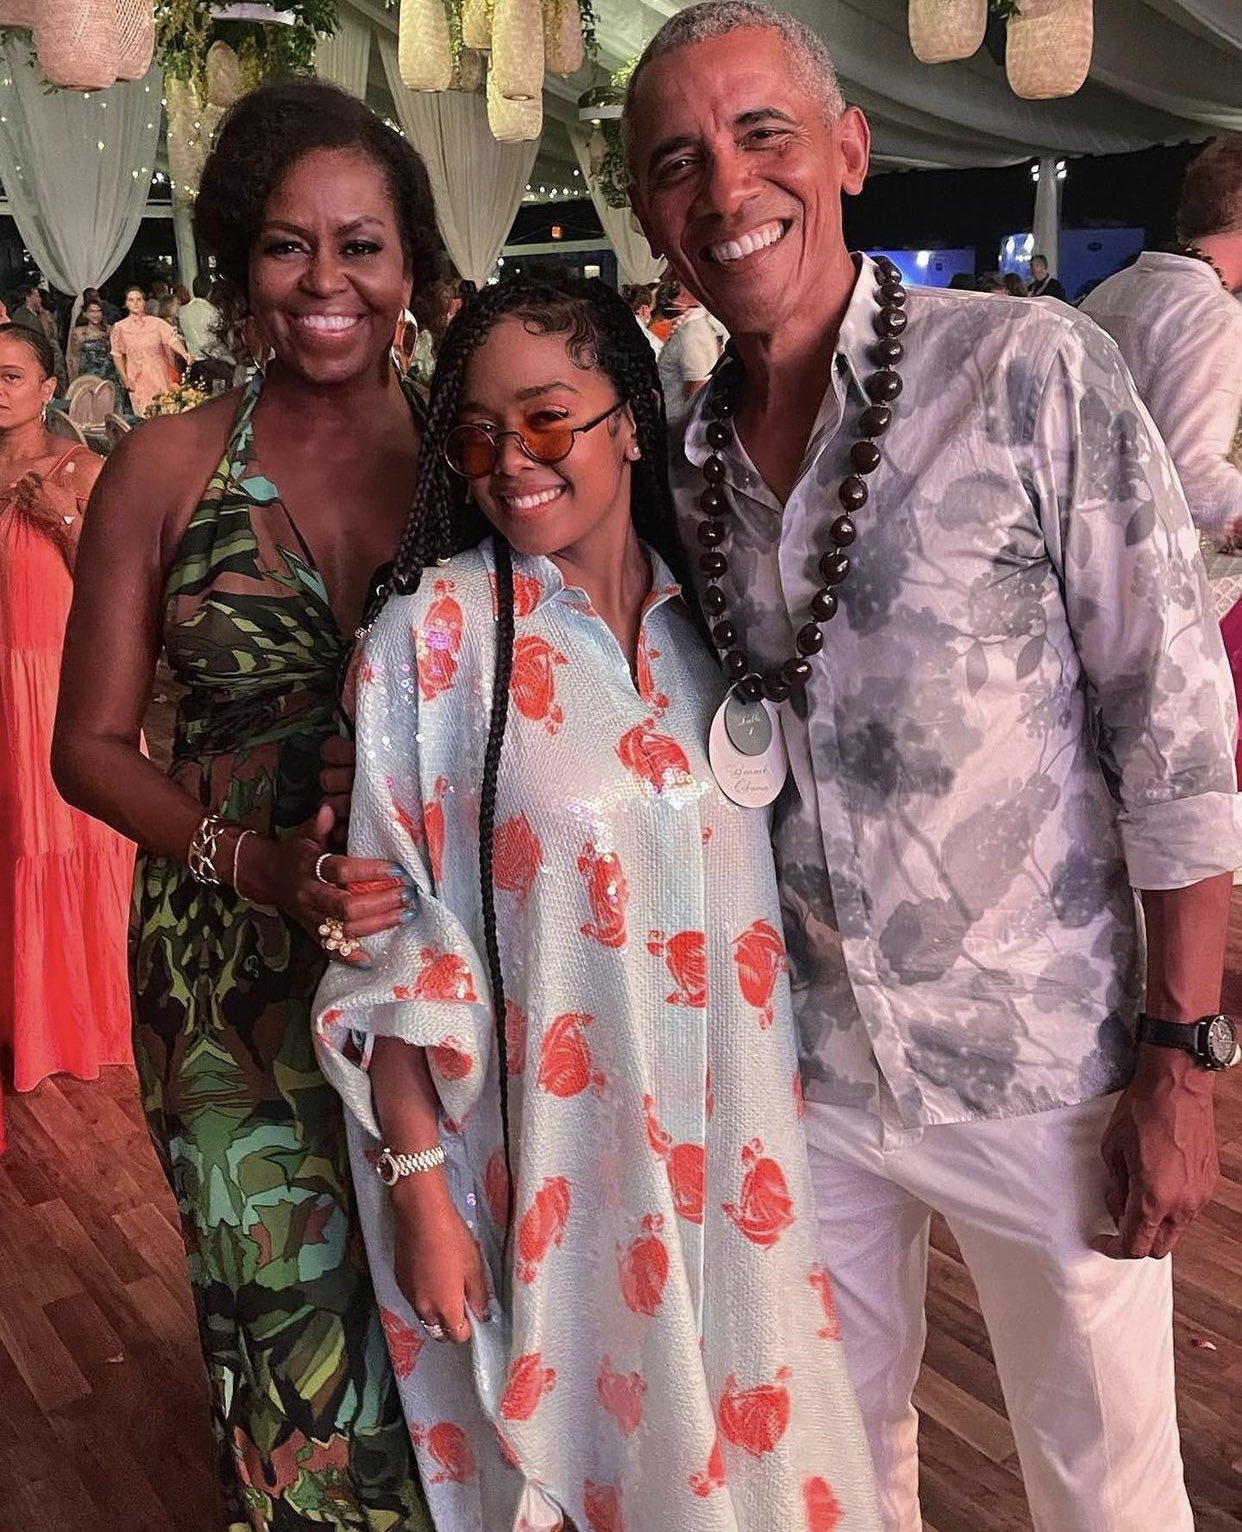 barack-obama-wears-fendi-floral-shirt-for-his-60th-birthday-party-michelle-obama-in-custom-dundas